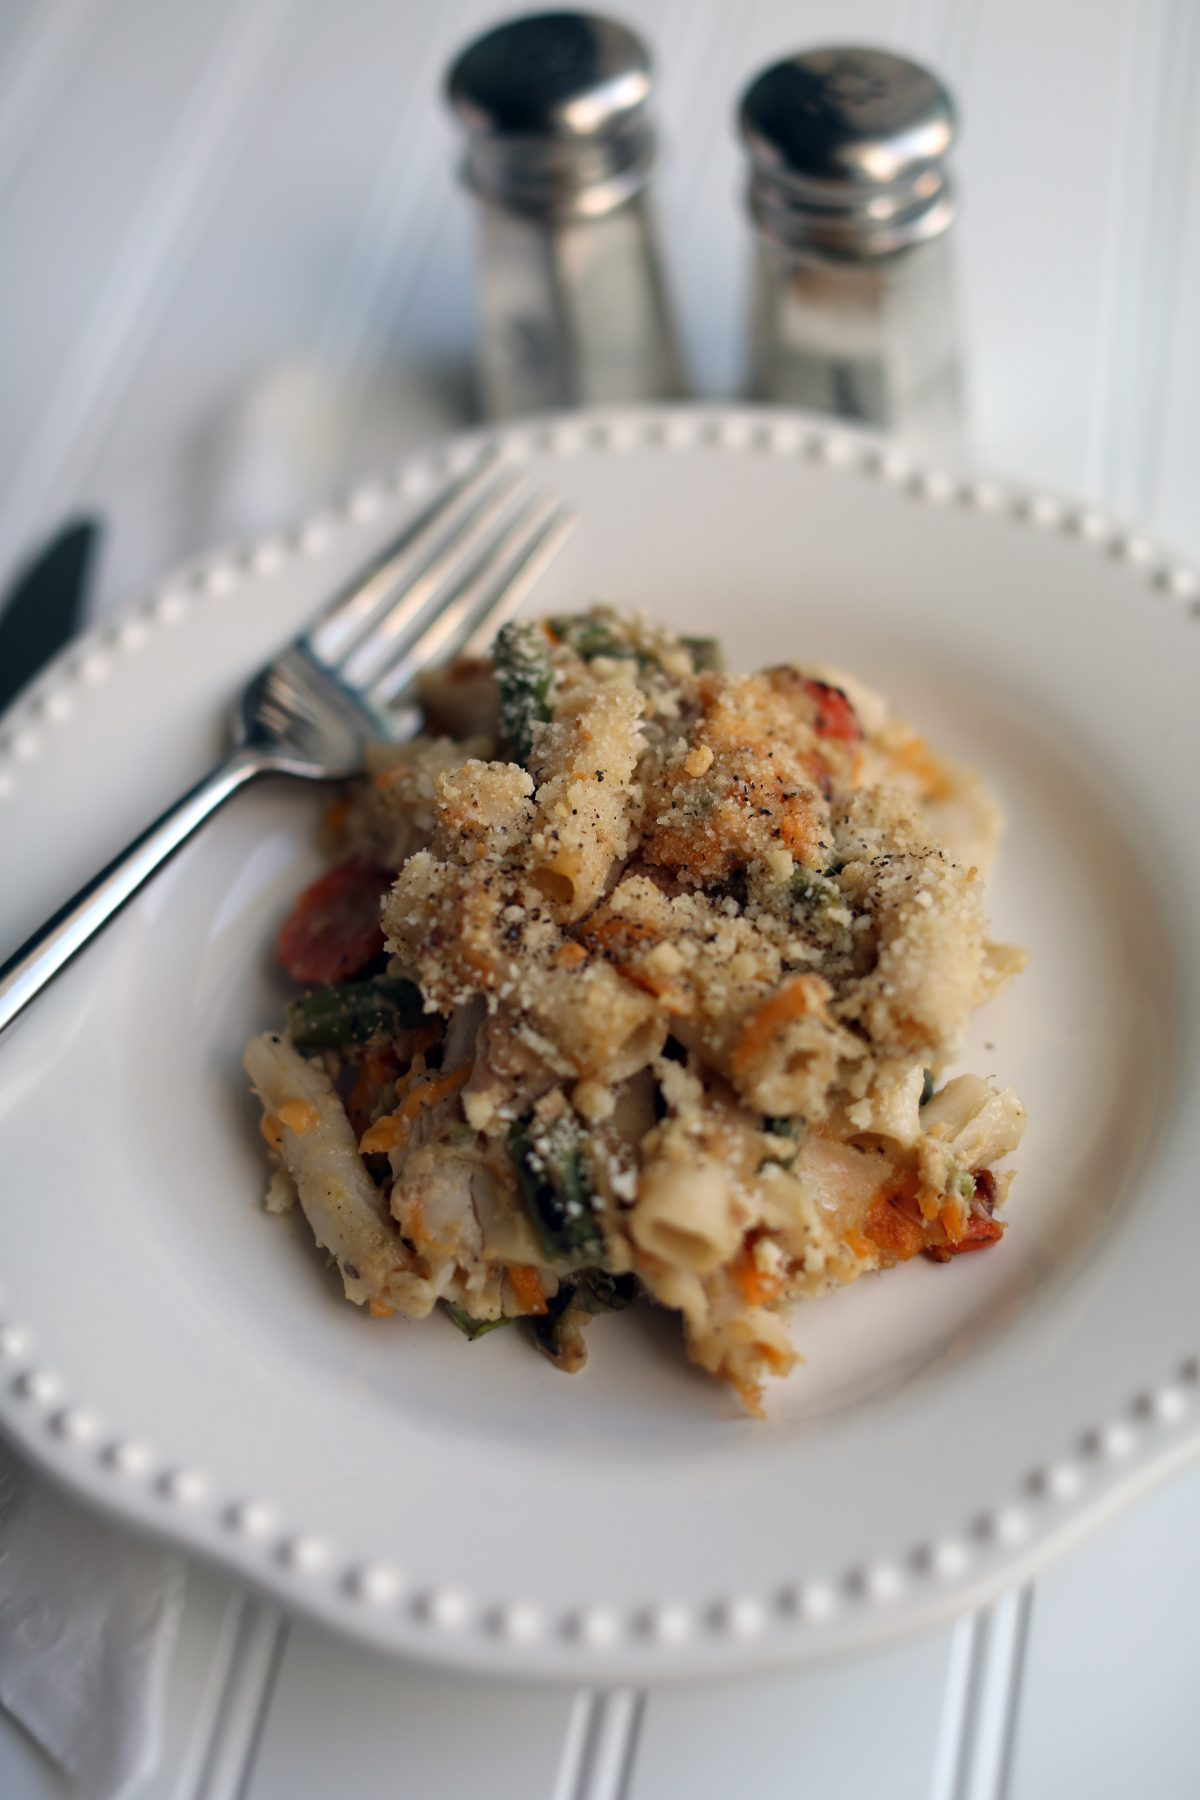 Low-FODMAP Tuna Casserole with Safe Catch Tuna